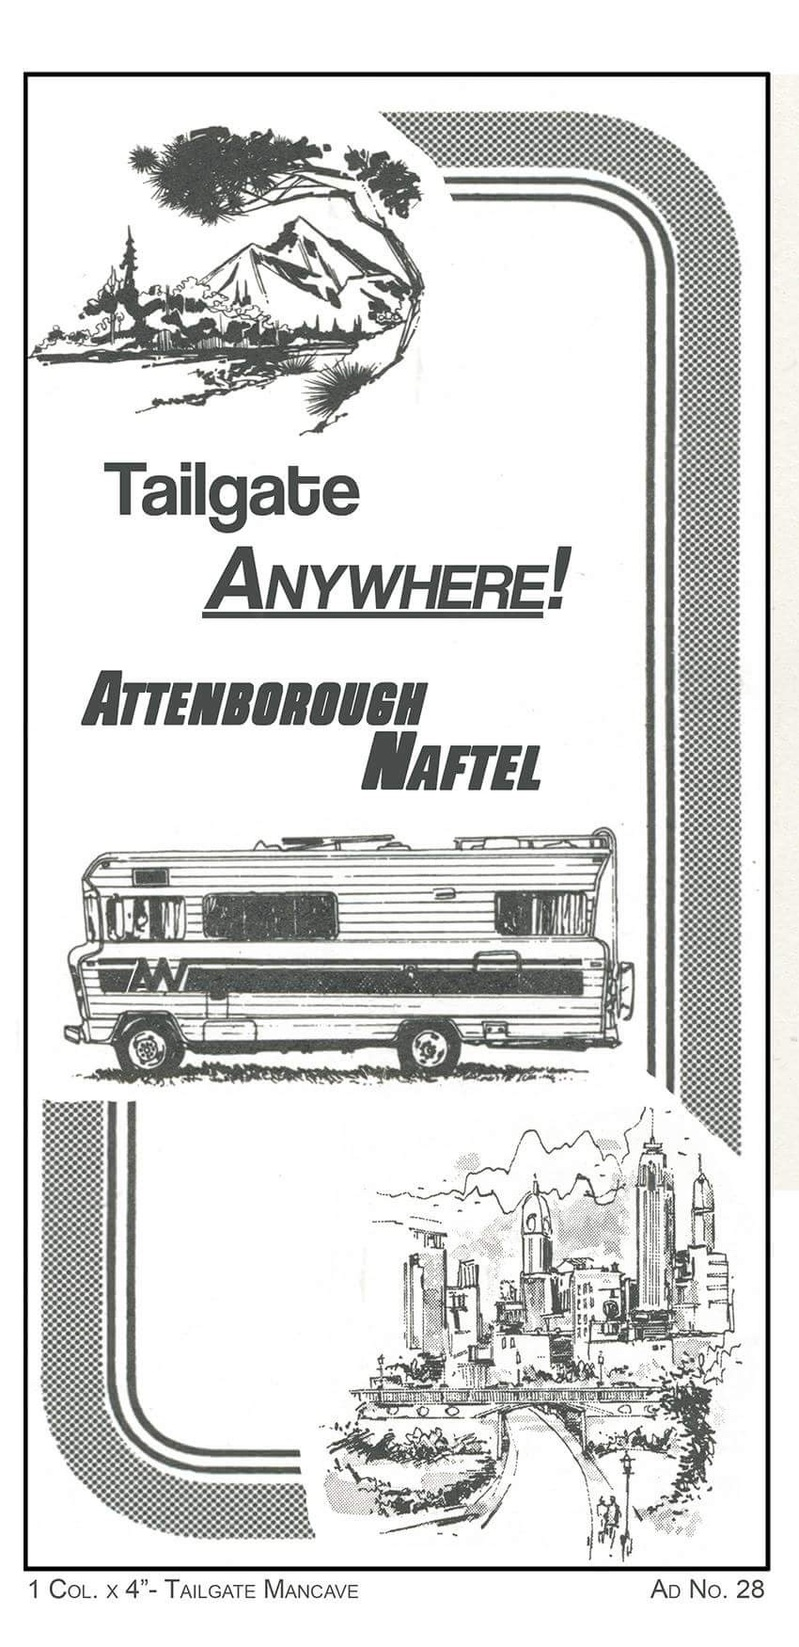 Tailgate Man Cave Tailgate Man Cave Ad No. 28